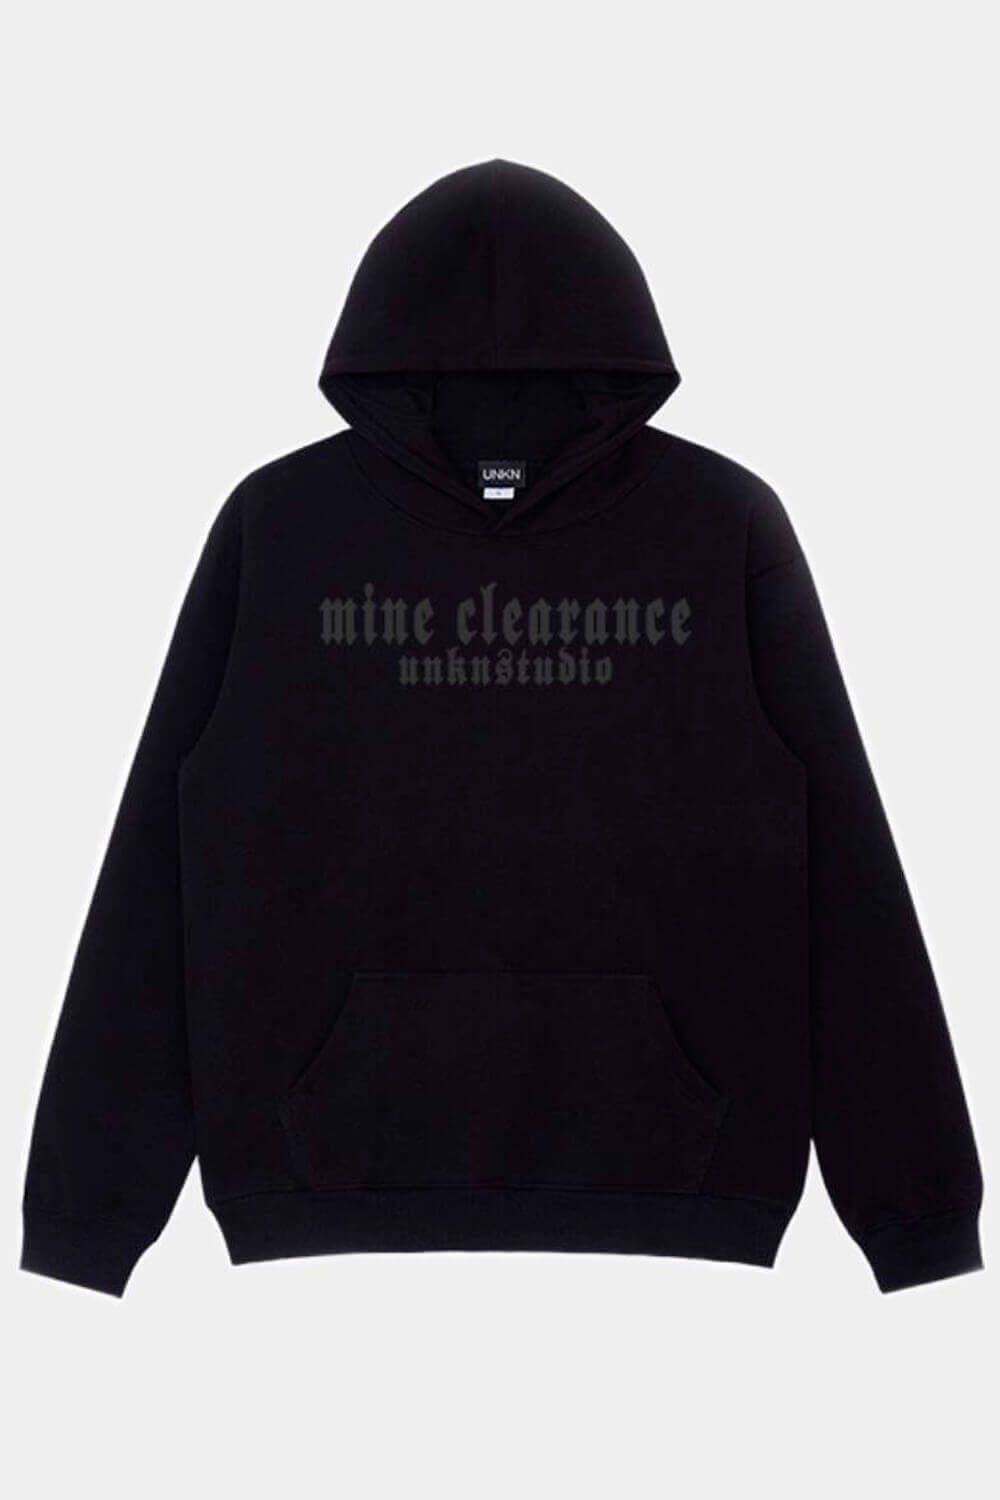 Mine Clearence Retro Checkered Hoodie